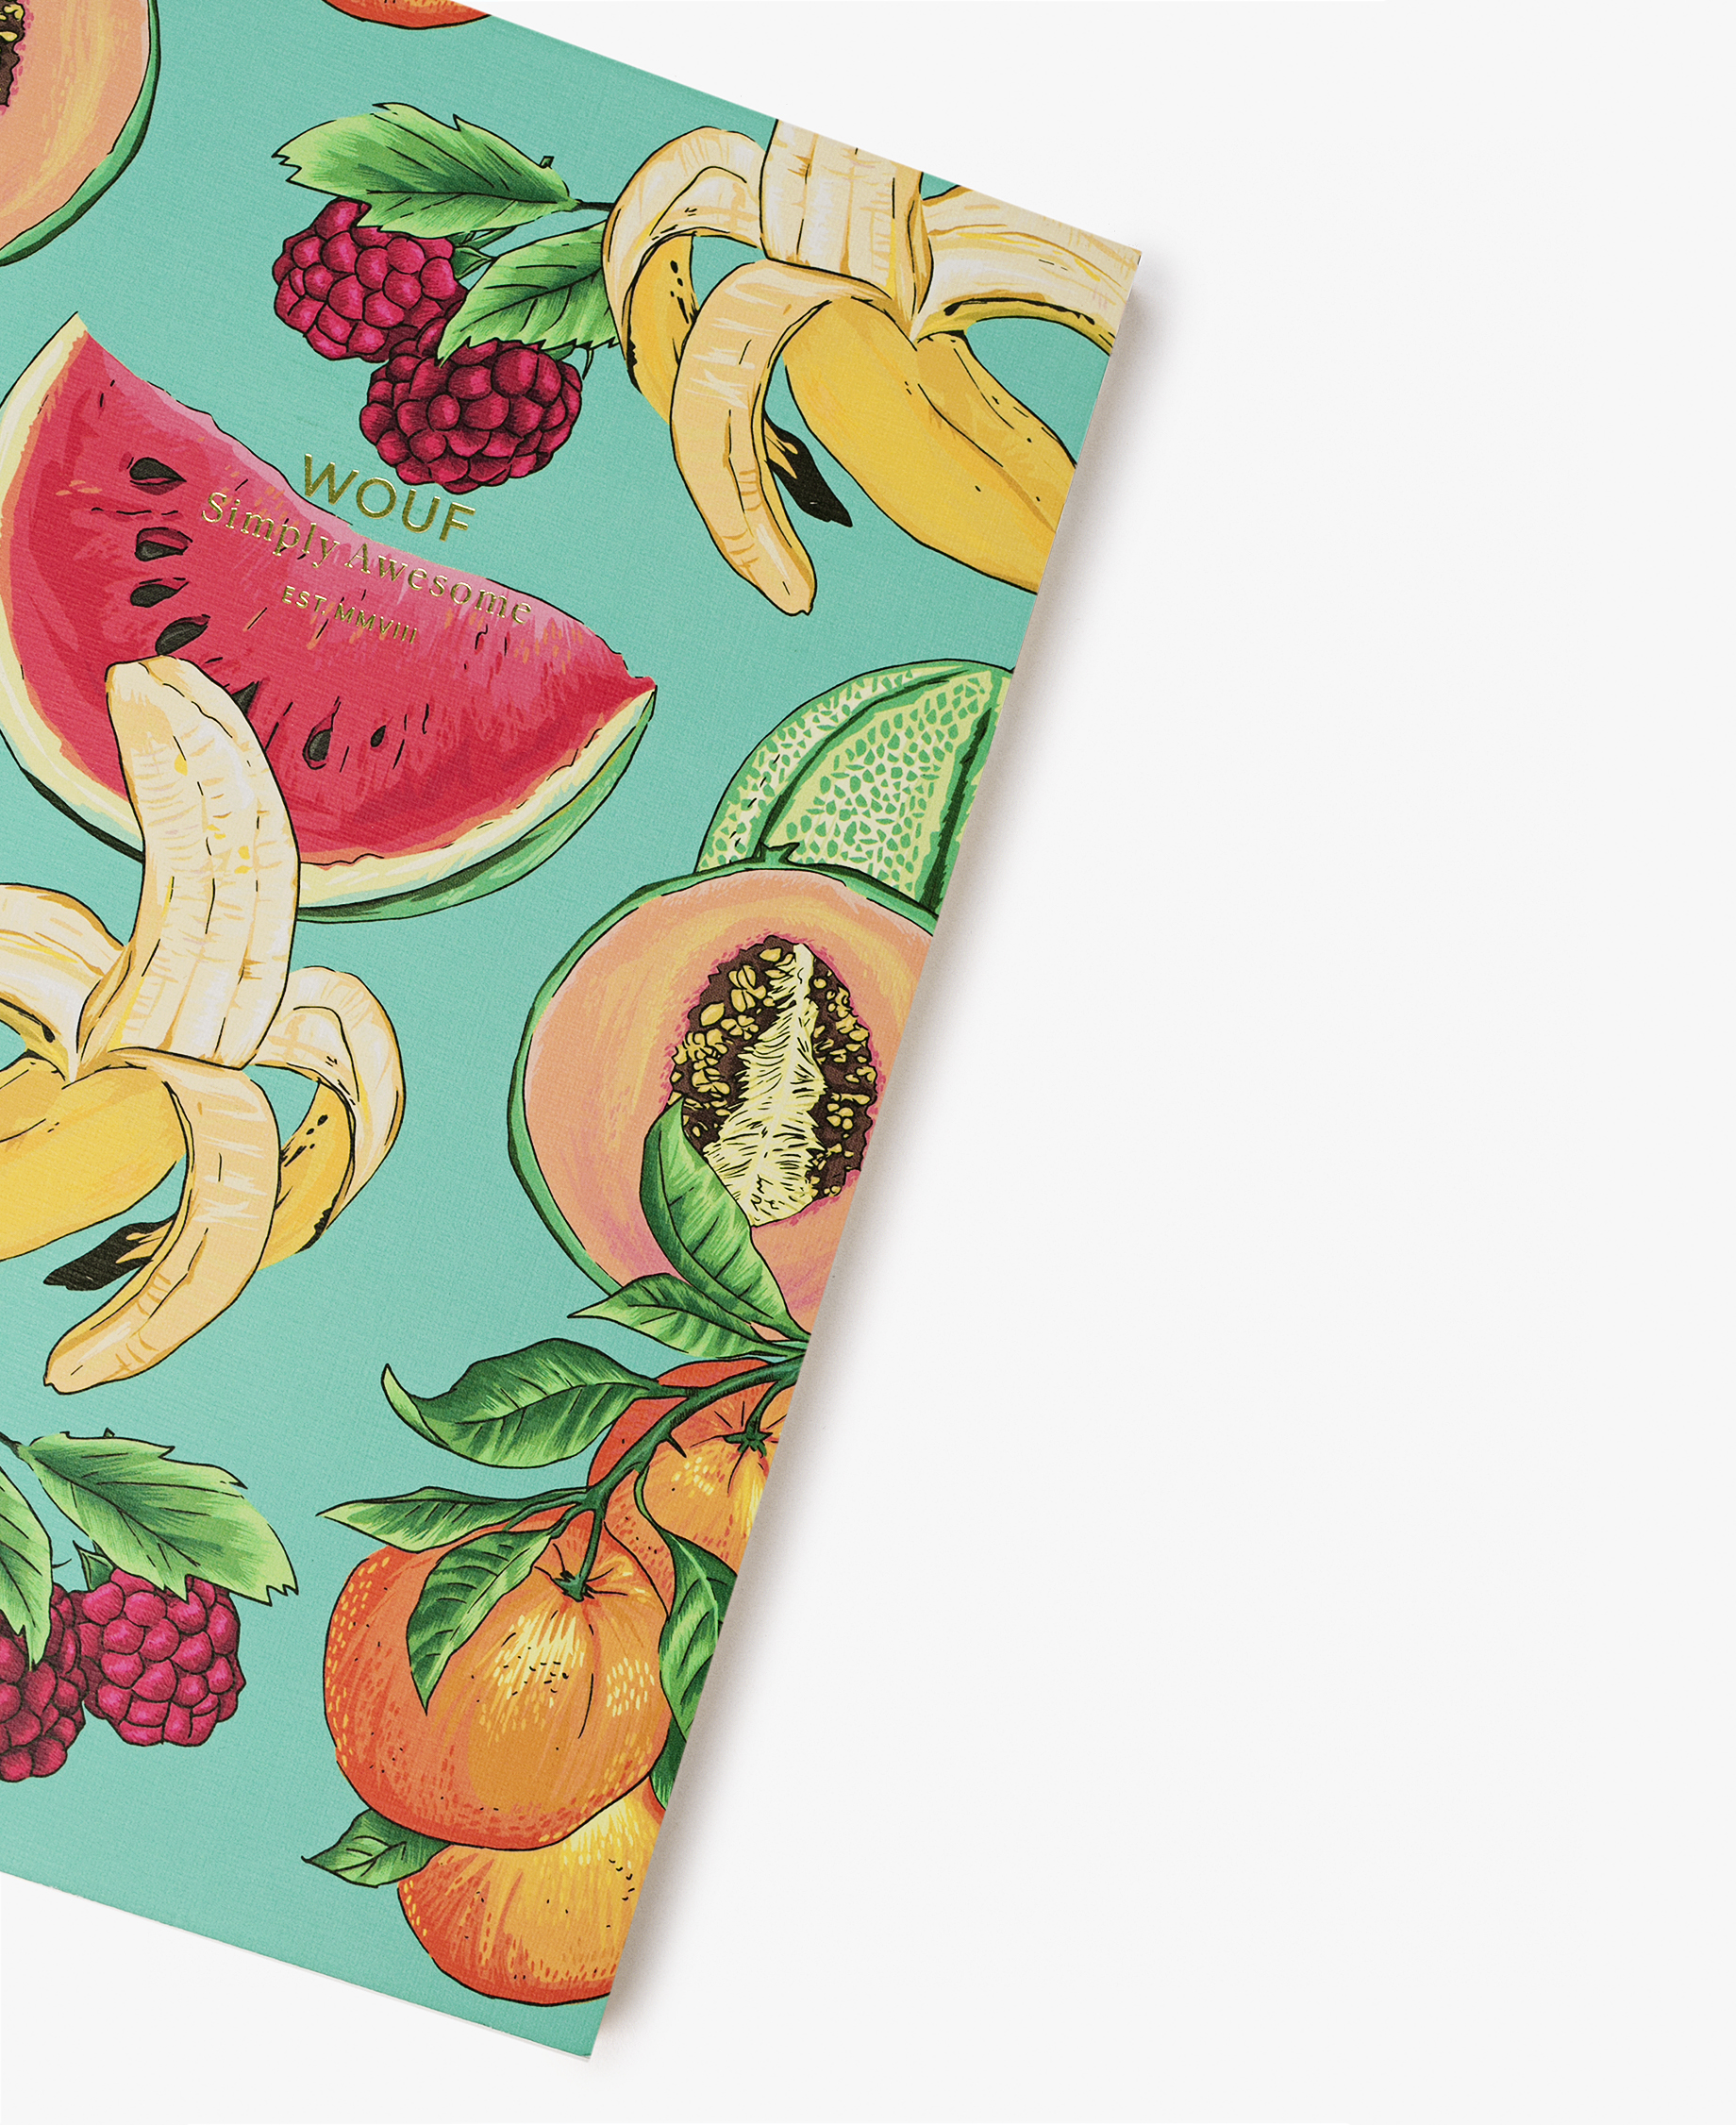 journal notebook designed with fruits